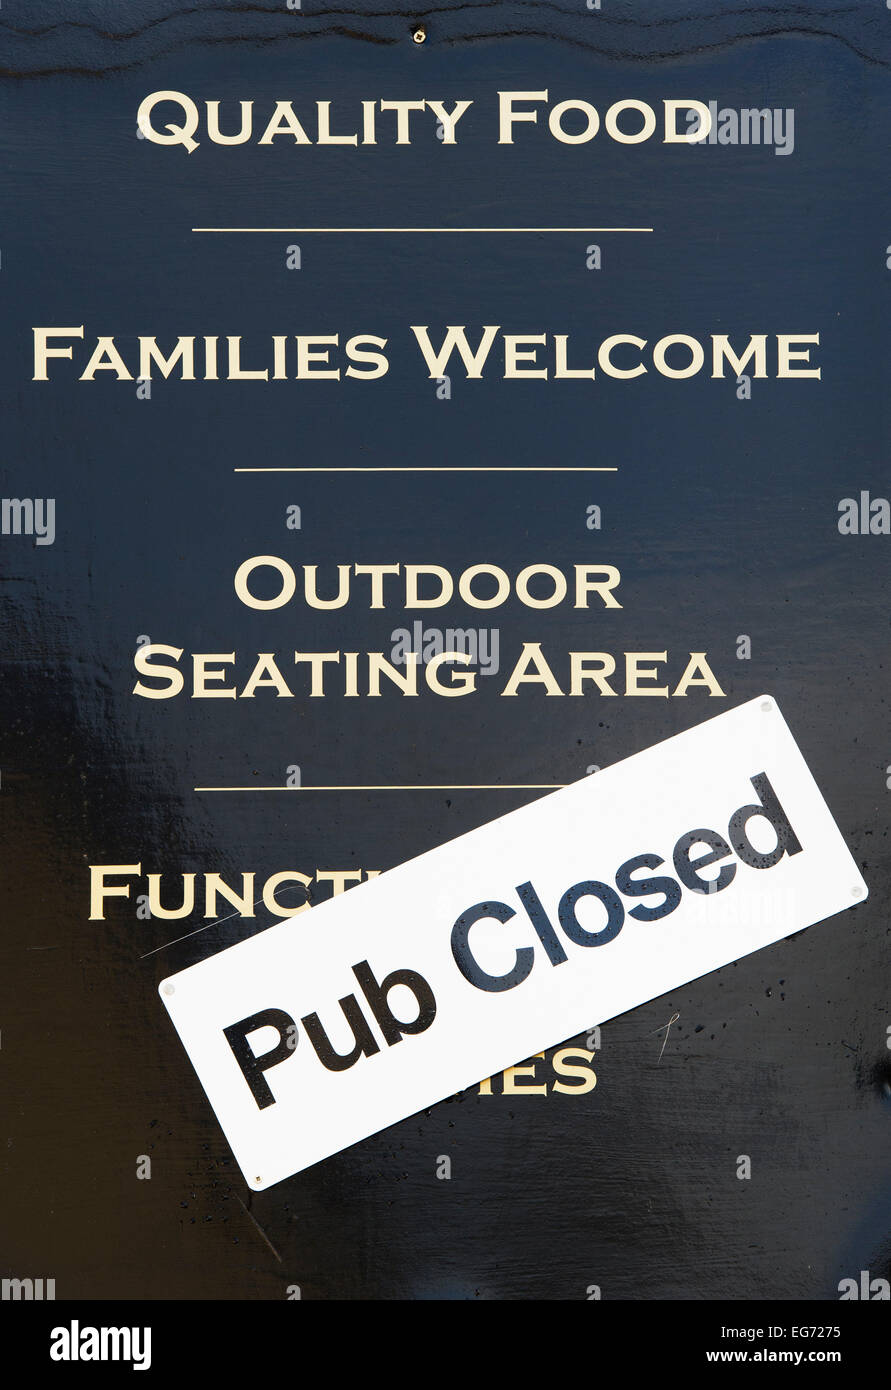 Pub closed sign on a pub sign. Clifton, Oxfordshire, England - Stock Image